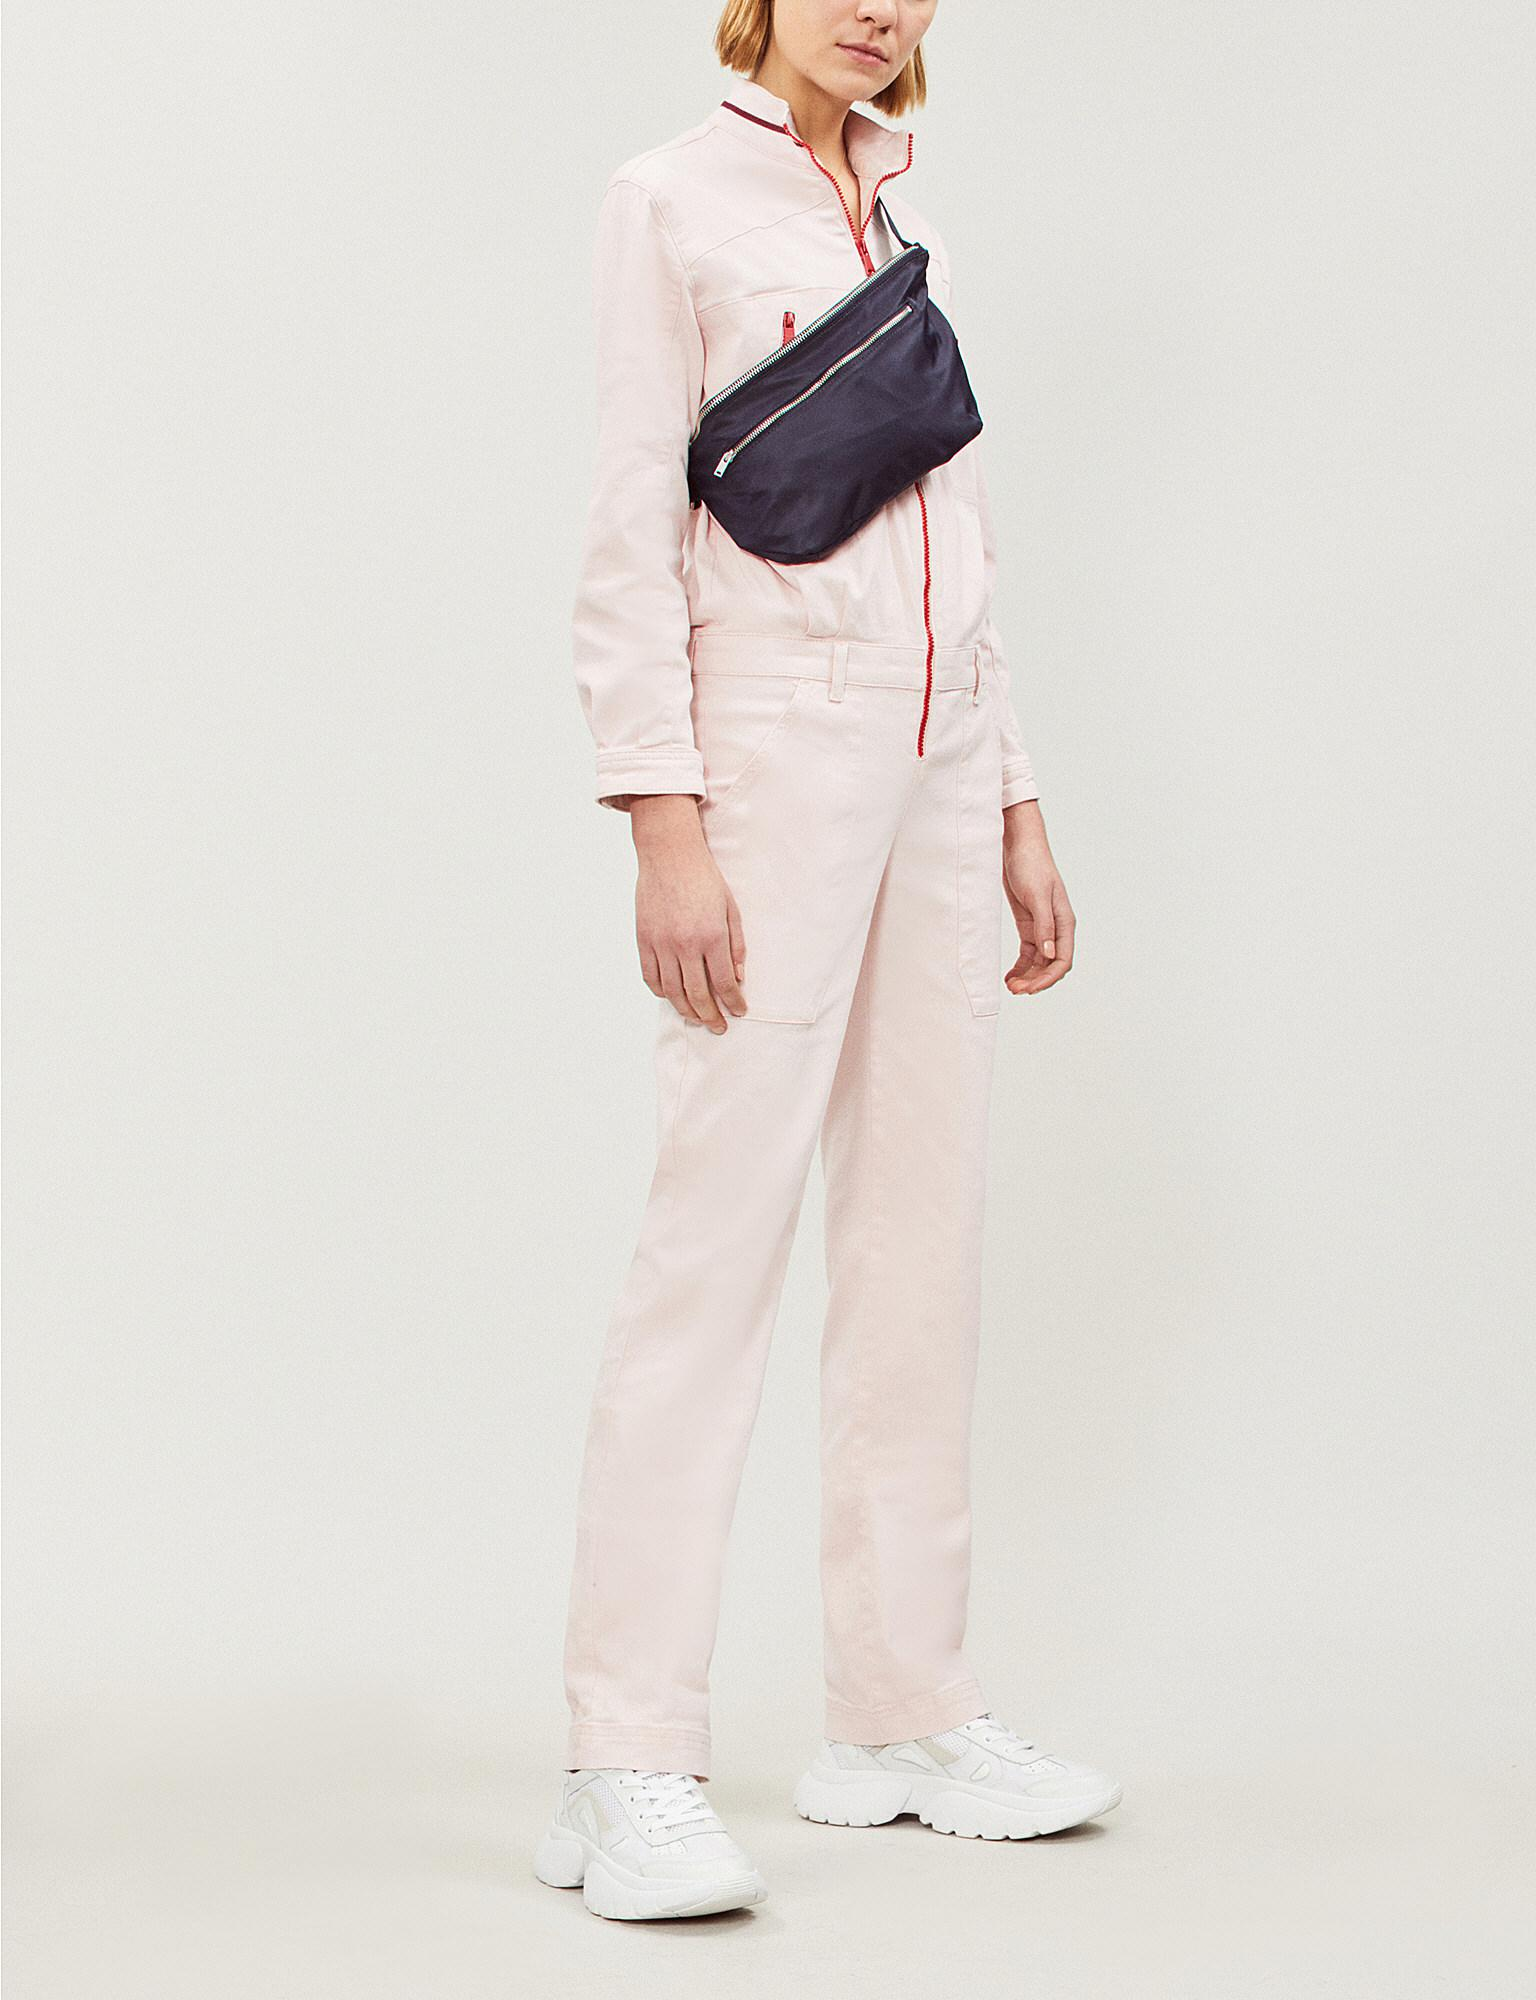 abd992e6b20a Ba sh Cesar Stretch-denim Jumpsuit in Pink - Lyst